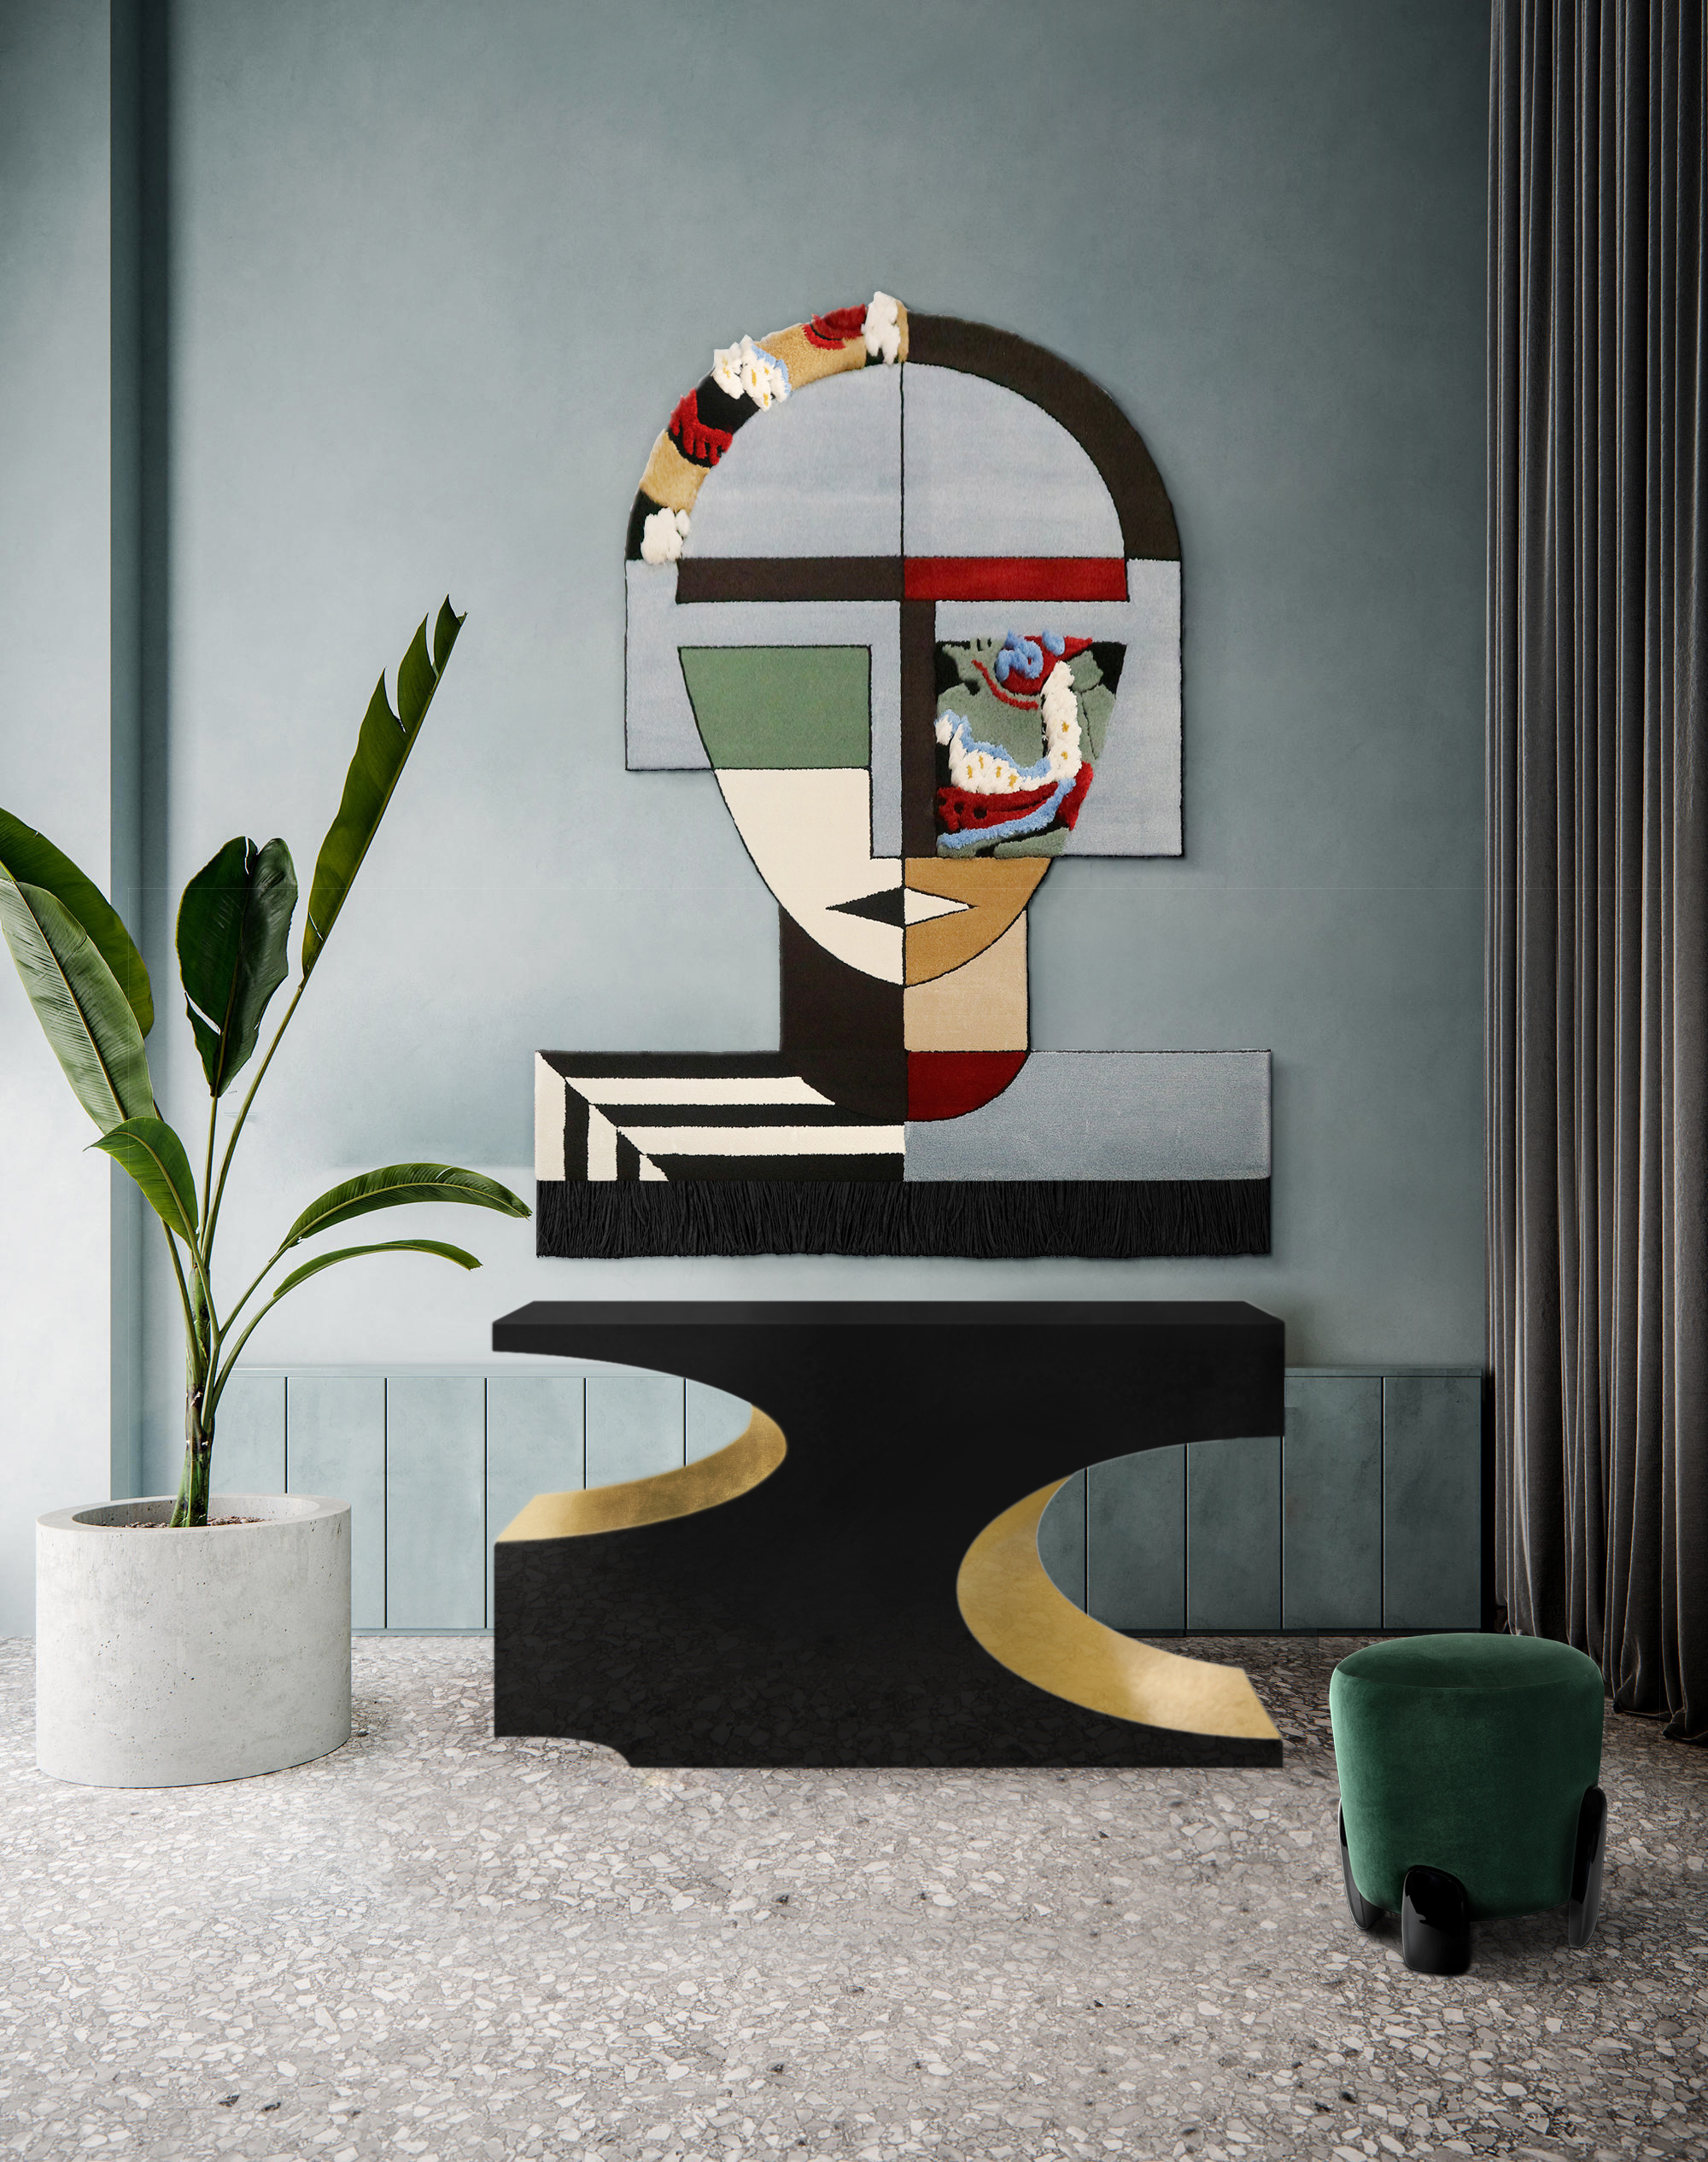 Maximalist Design: Discover All About The 'More-is-More' Approach maximalist design Maximalist Design: Discover All About The 'More-is-More' Approach 1